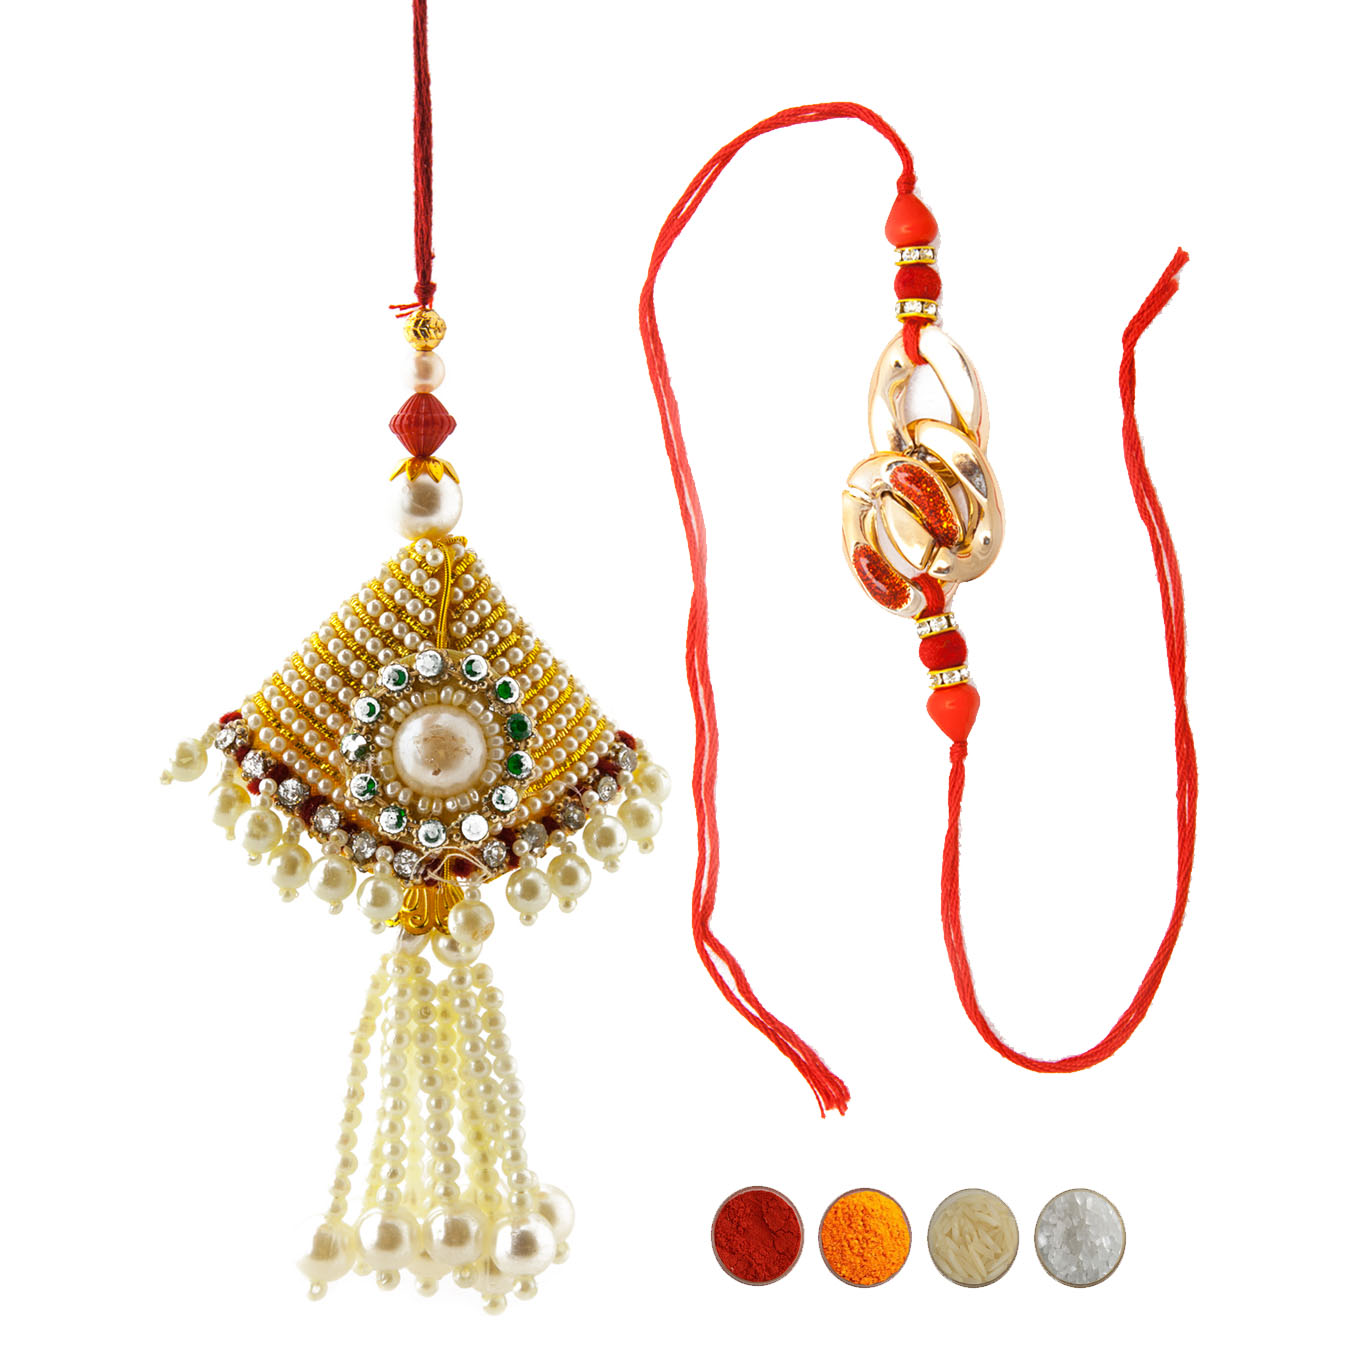 Fancy Rakhi Set for Bhaiya Bhabhi